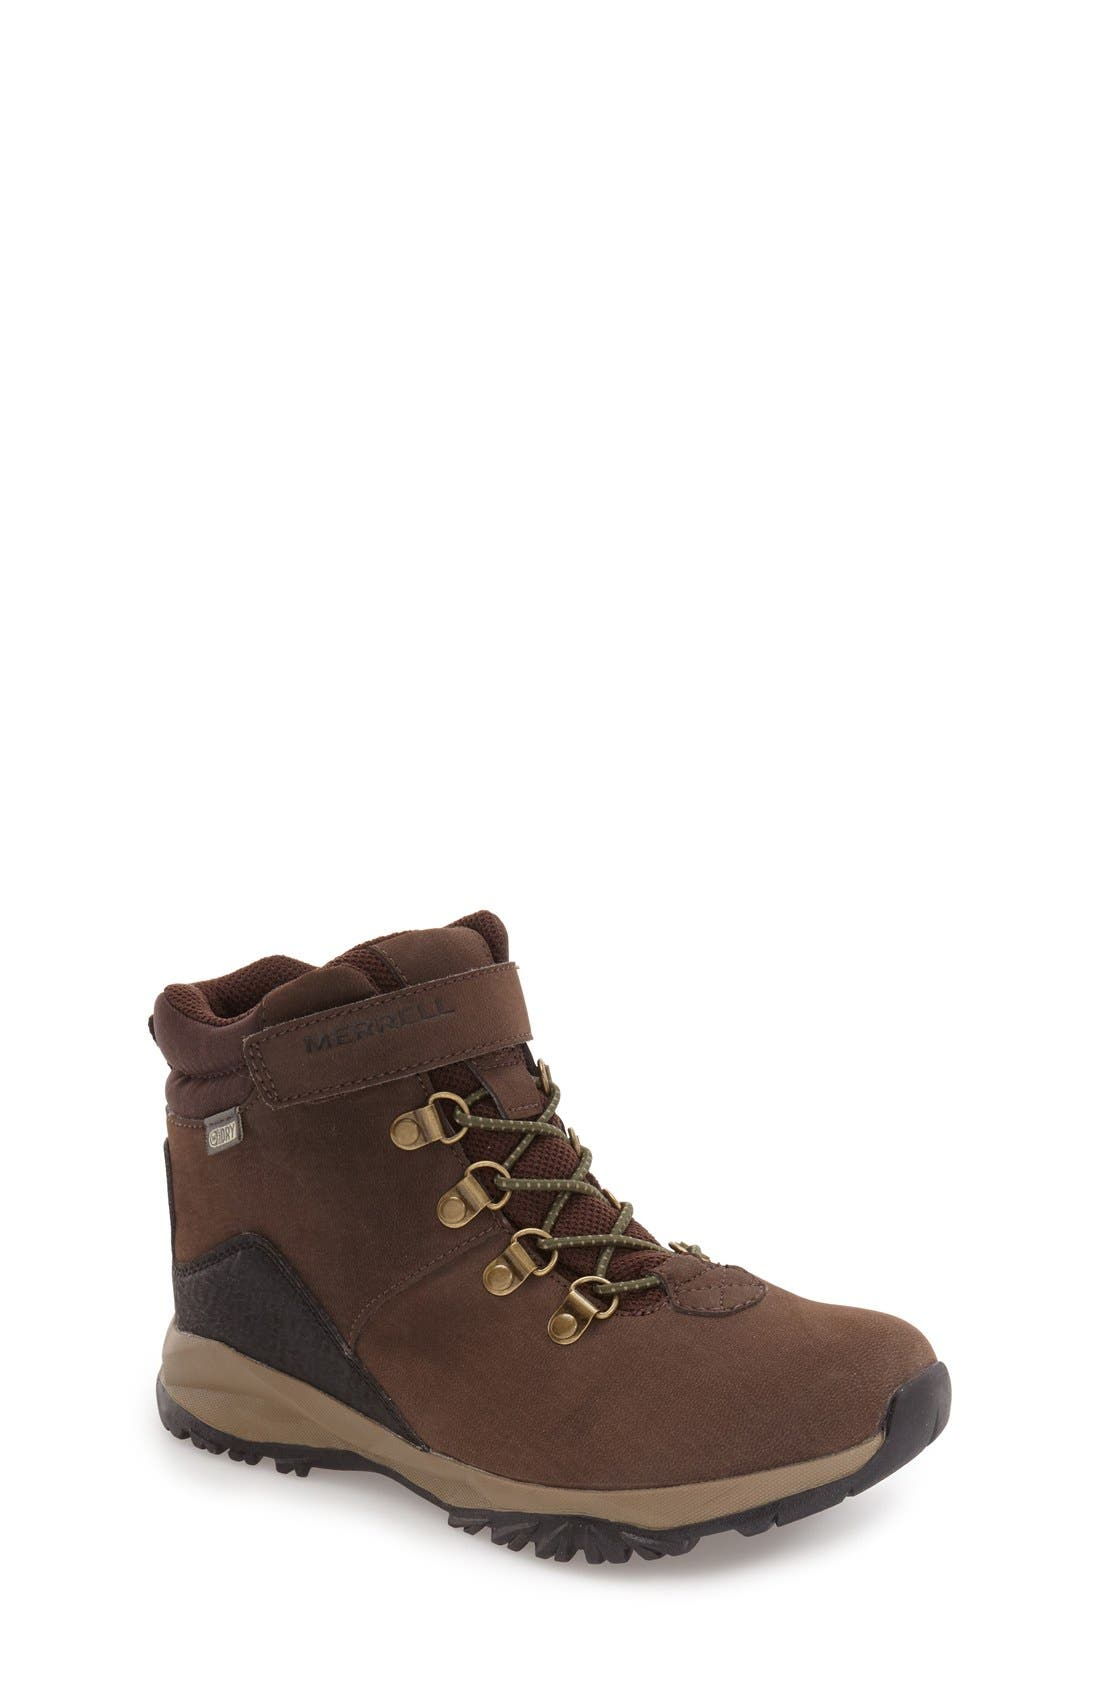 'Alpine' Waterproof Boot,                         Main,                         color, BROWN LEATHER